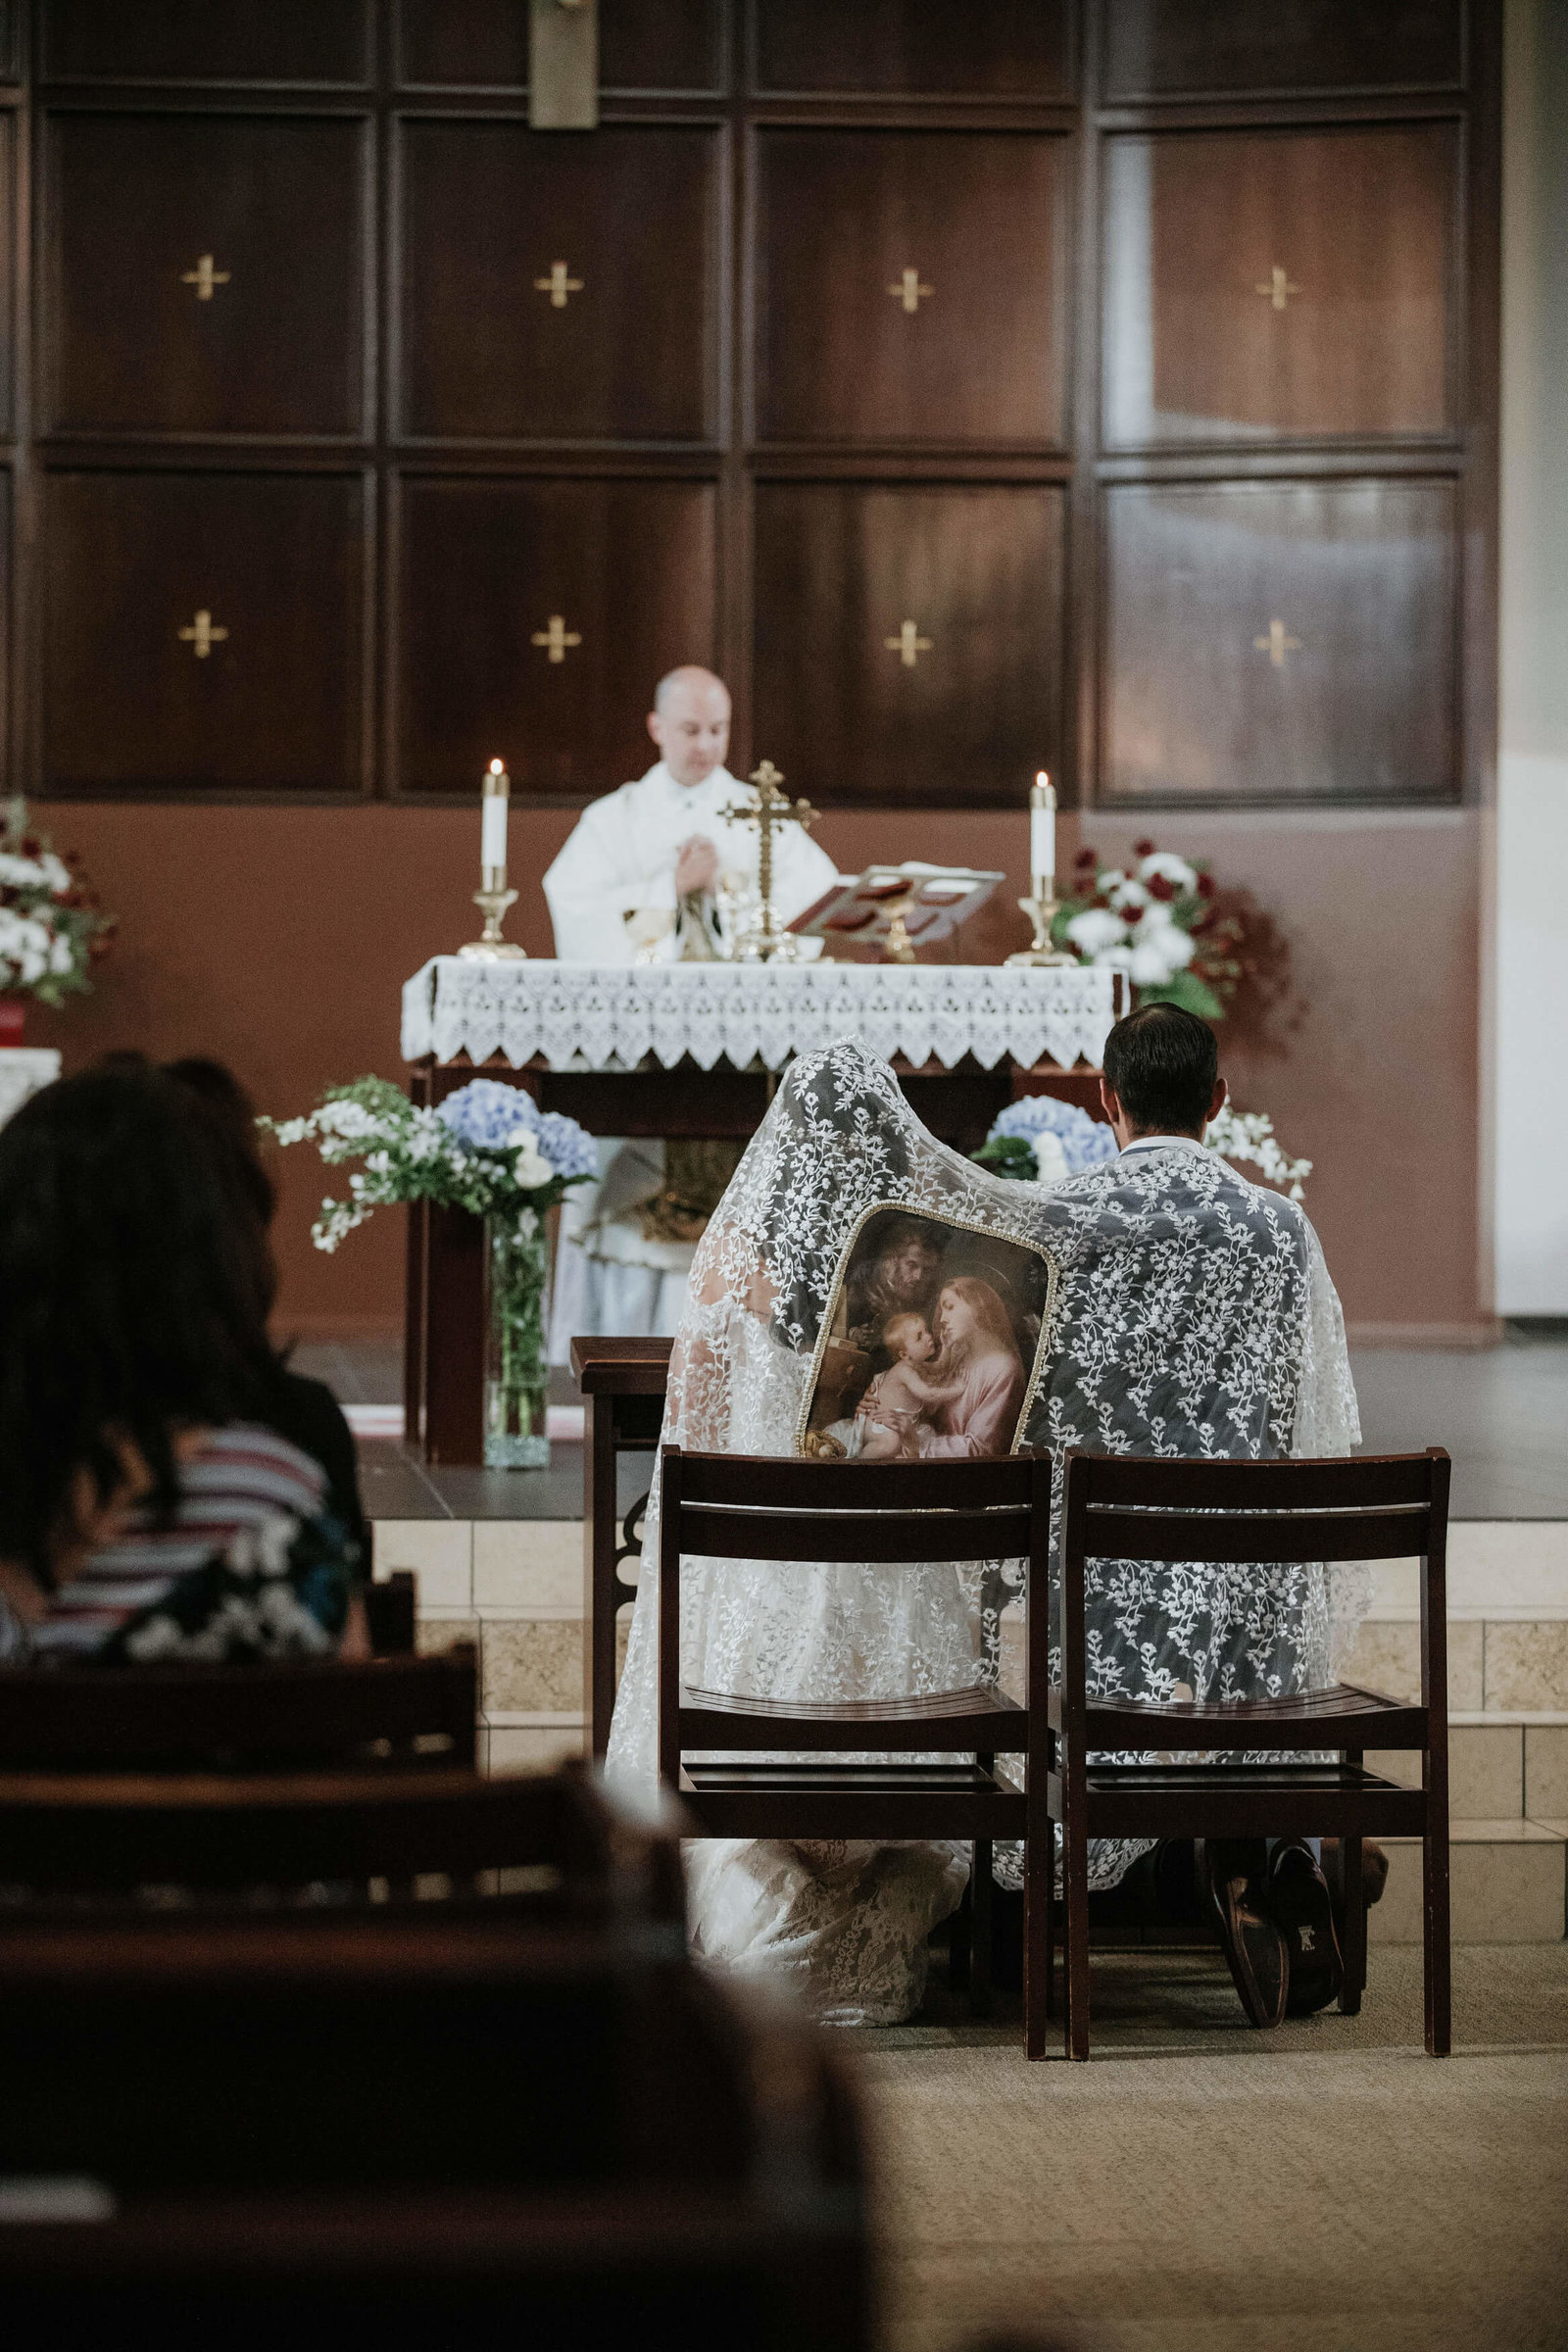 indoor-and-church-ceremonies-by-adina-preston-photography-41